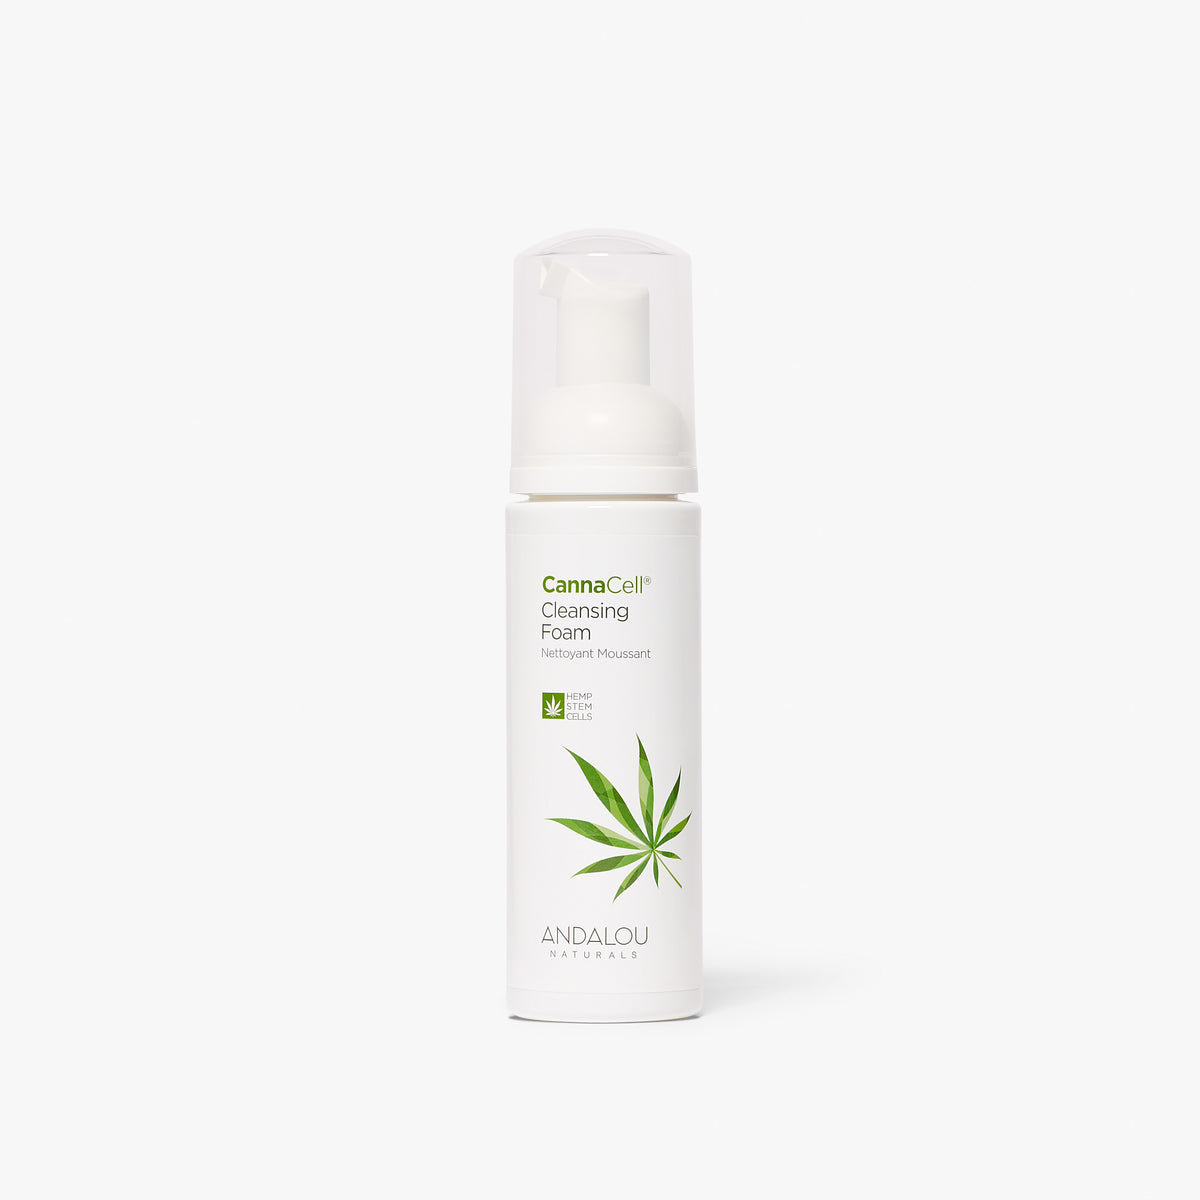 CannaCell Cleansing Foam - Andalou Naturals US